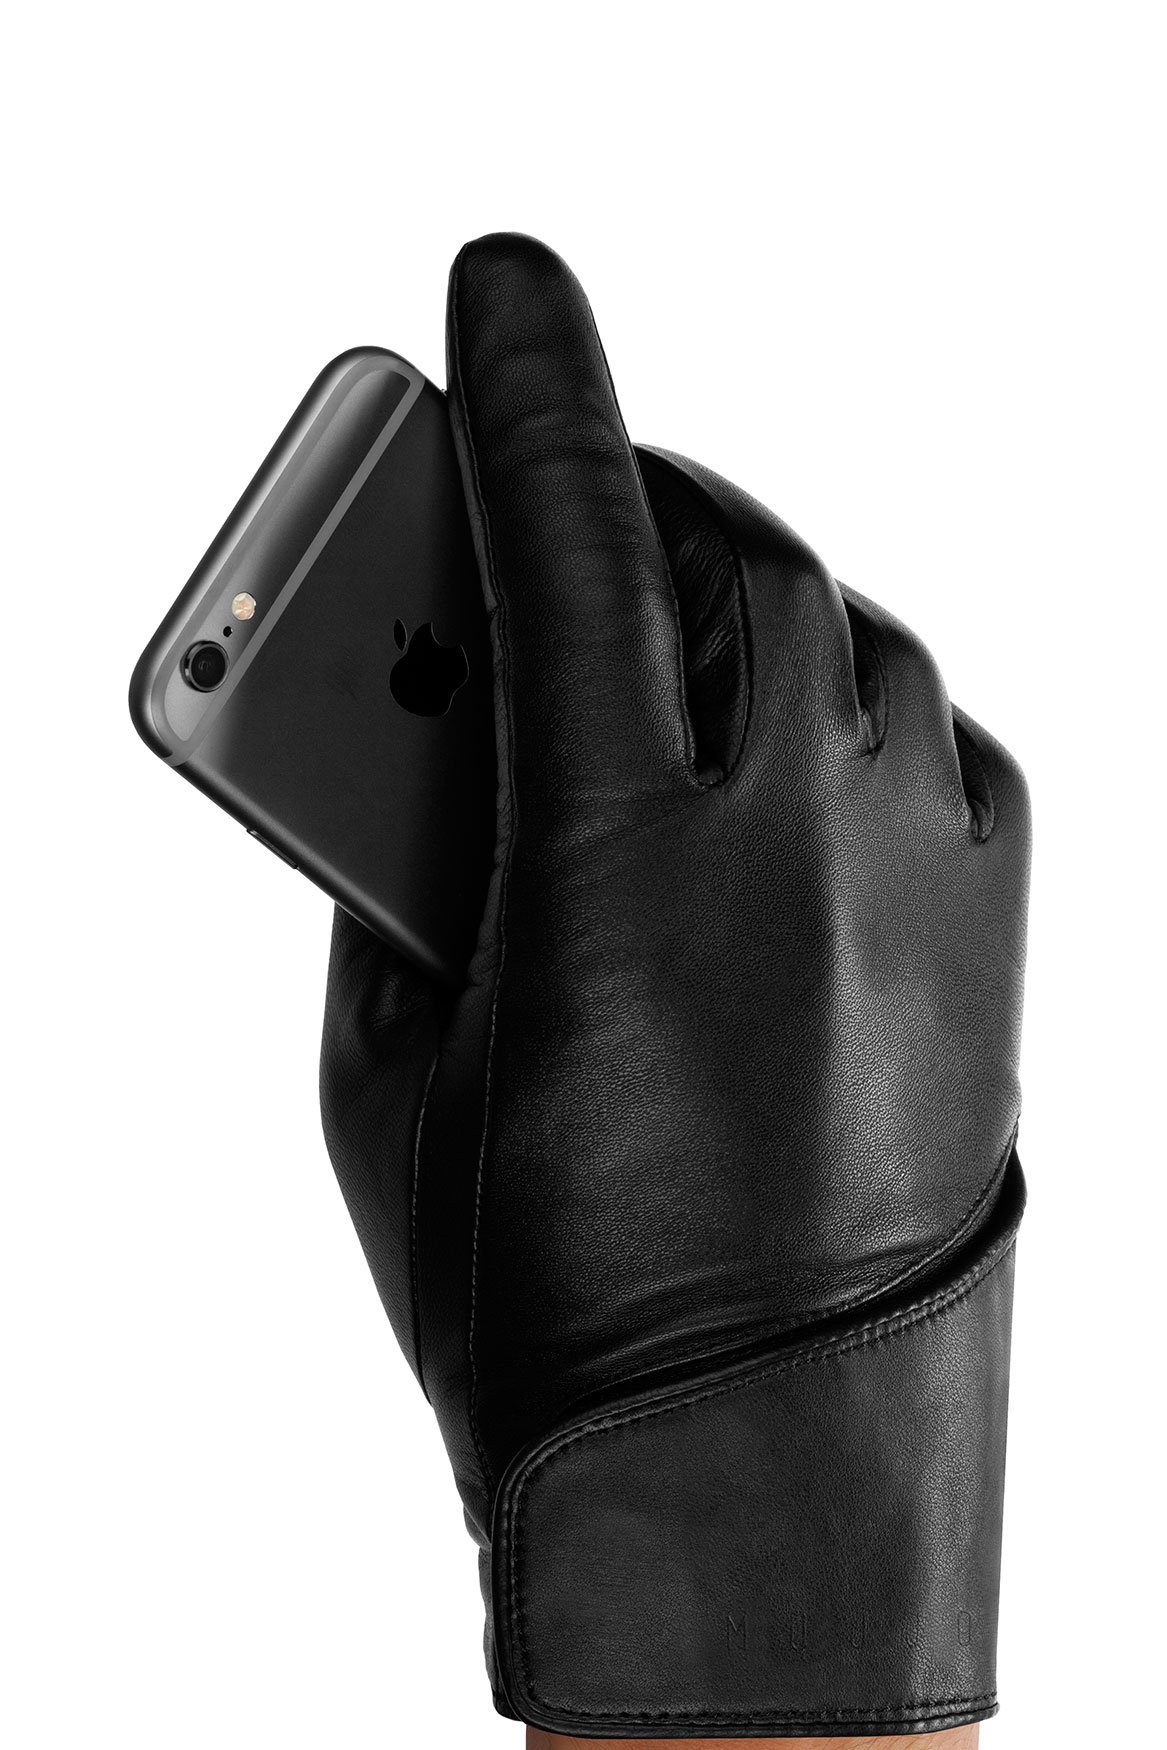 Mujjo Leather Touchscreen Gloves (8)